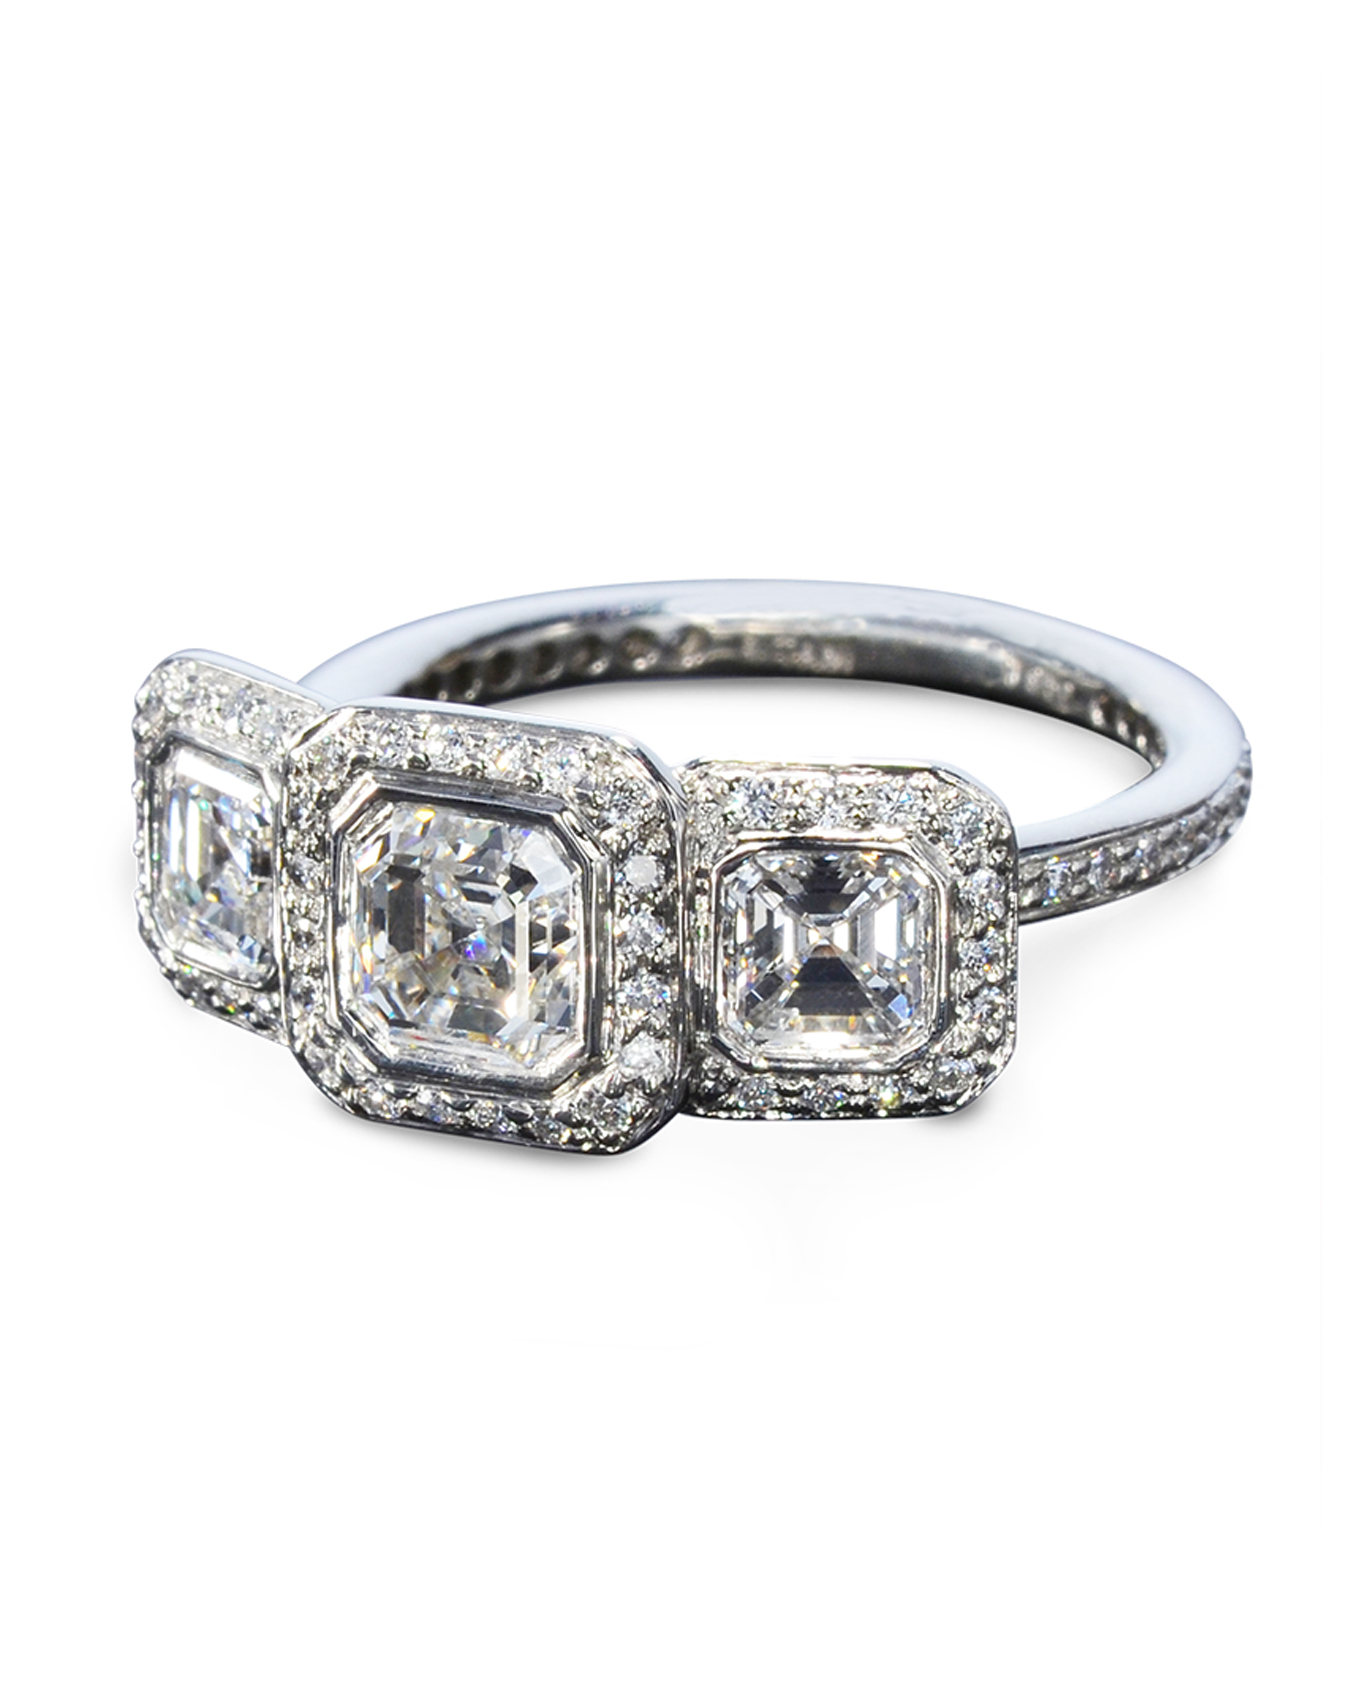 pippa master jewelry diamond sale img j rings asscher engagement middleton ring id for cut style at